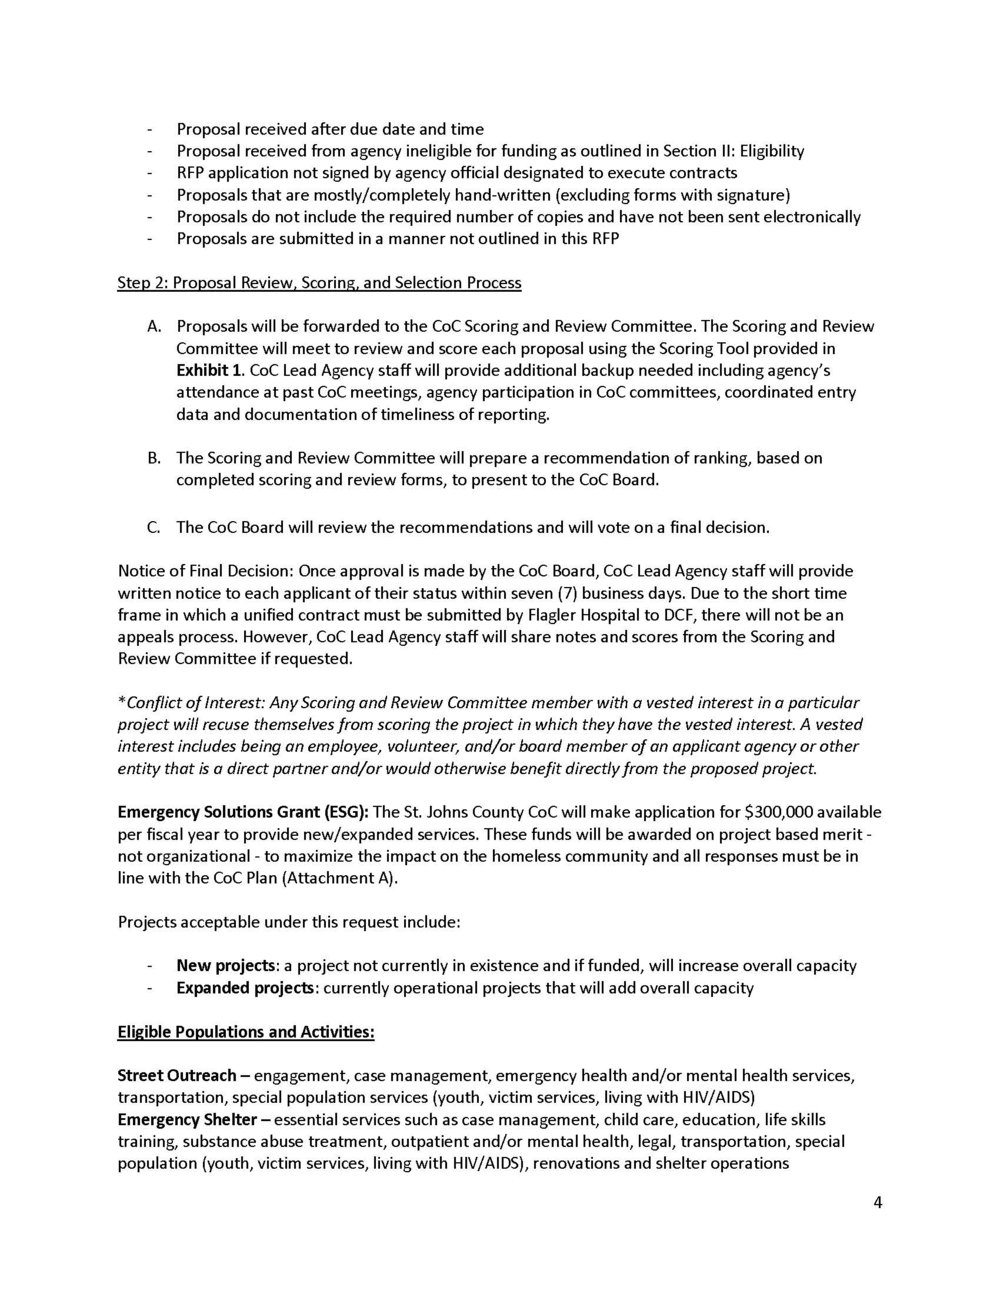 2019 RFP - Final (updated)_Page_04.jpg